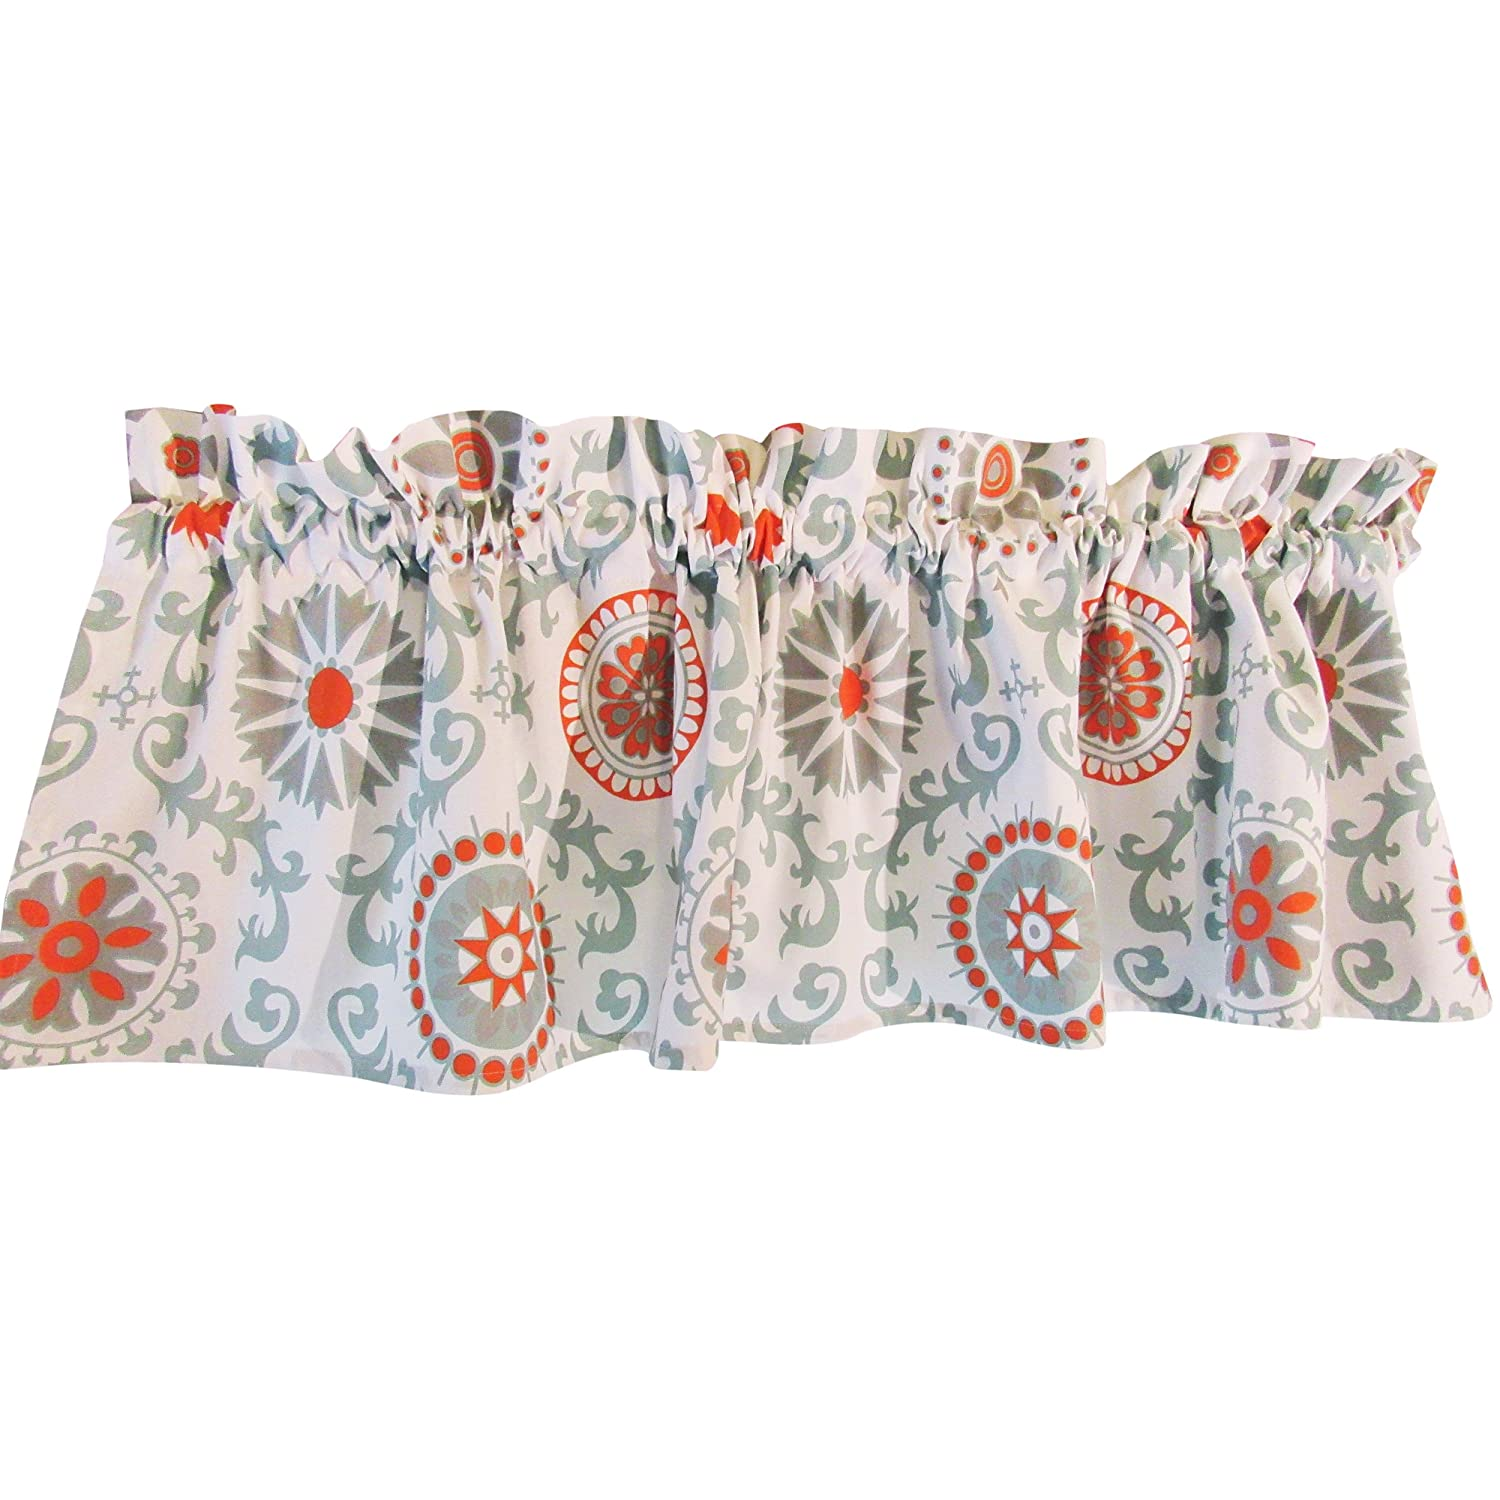 Crabtree Collection Curtain Medallion Valance for Windows - Medium Blue/Orange Medallion 40cm x 152cm PWV-2016